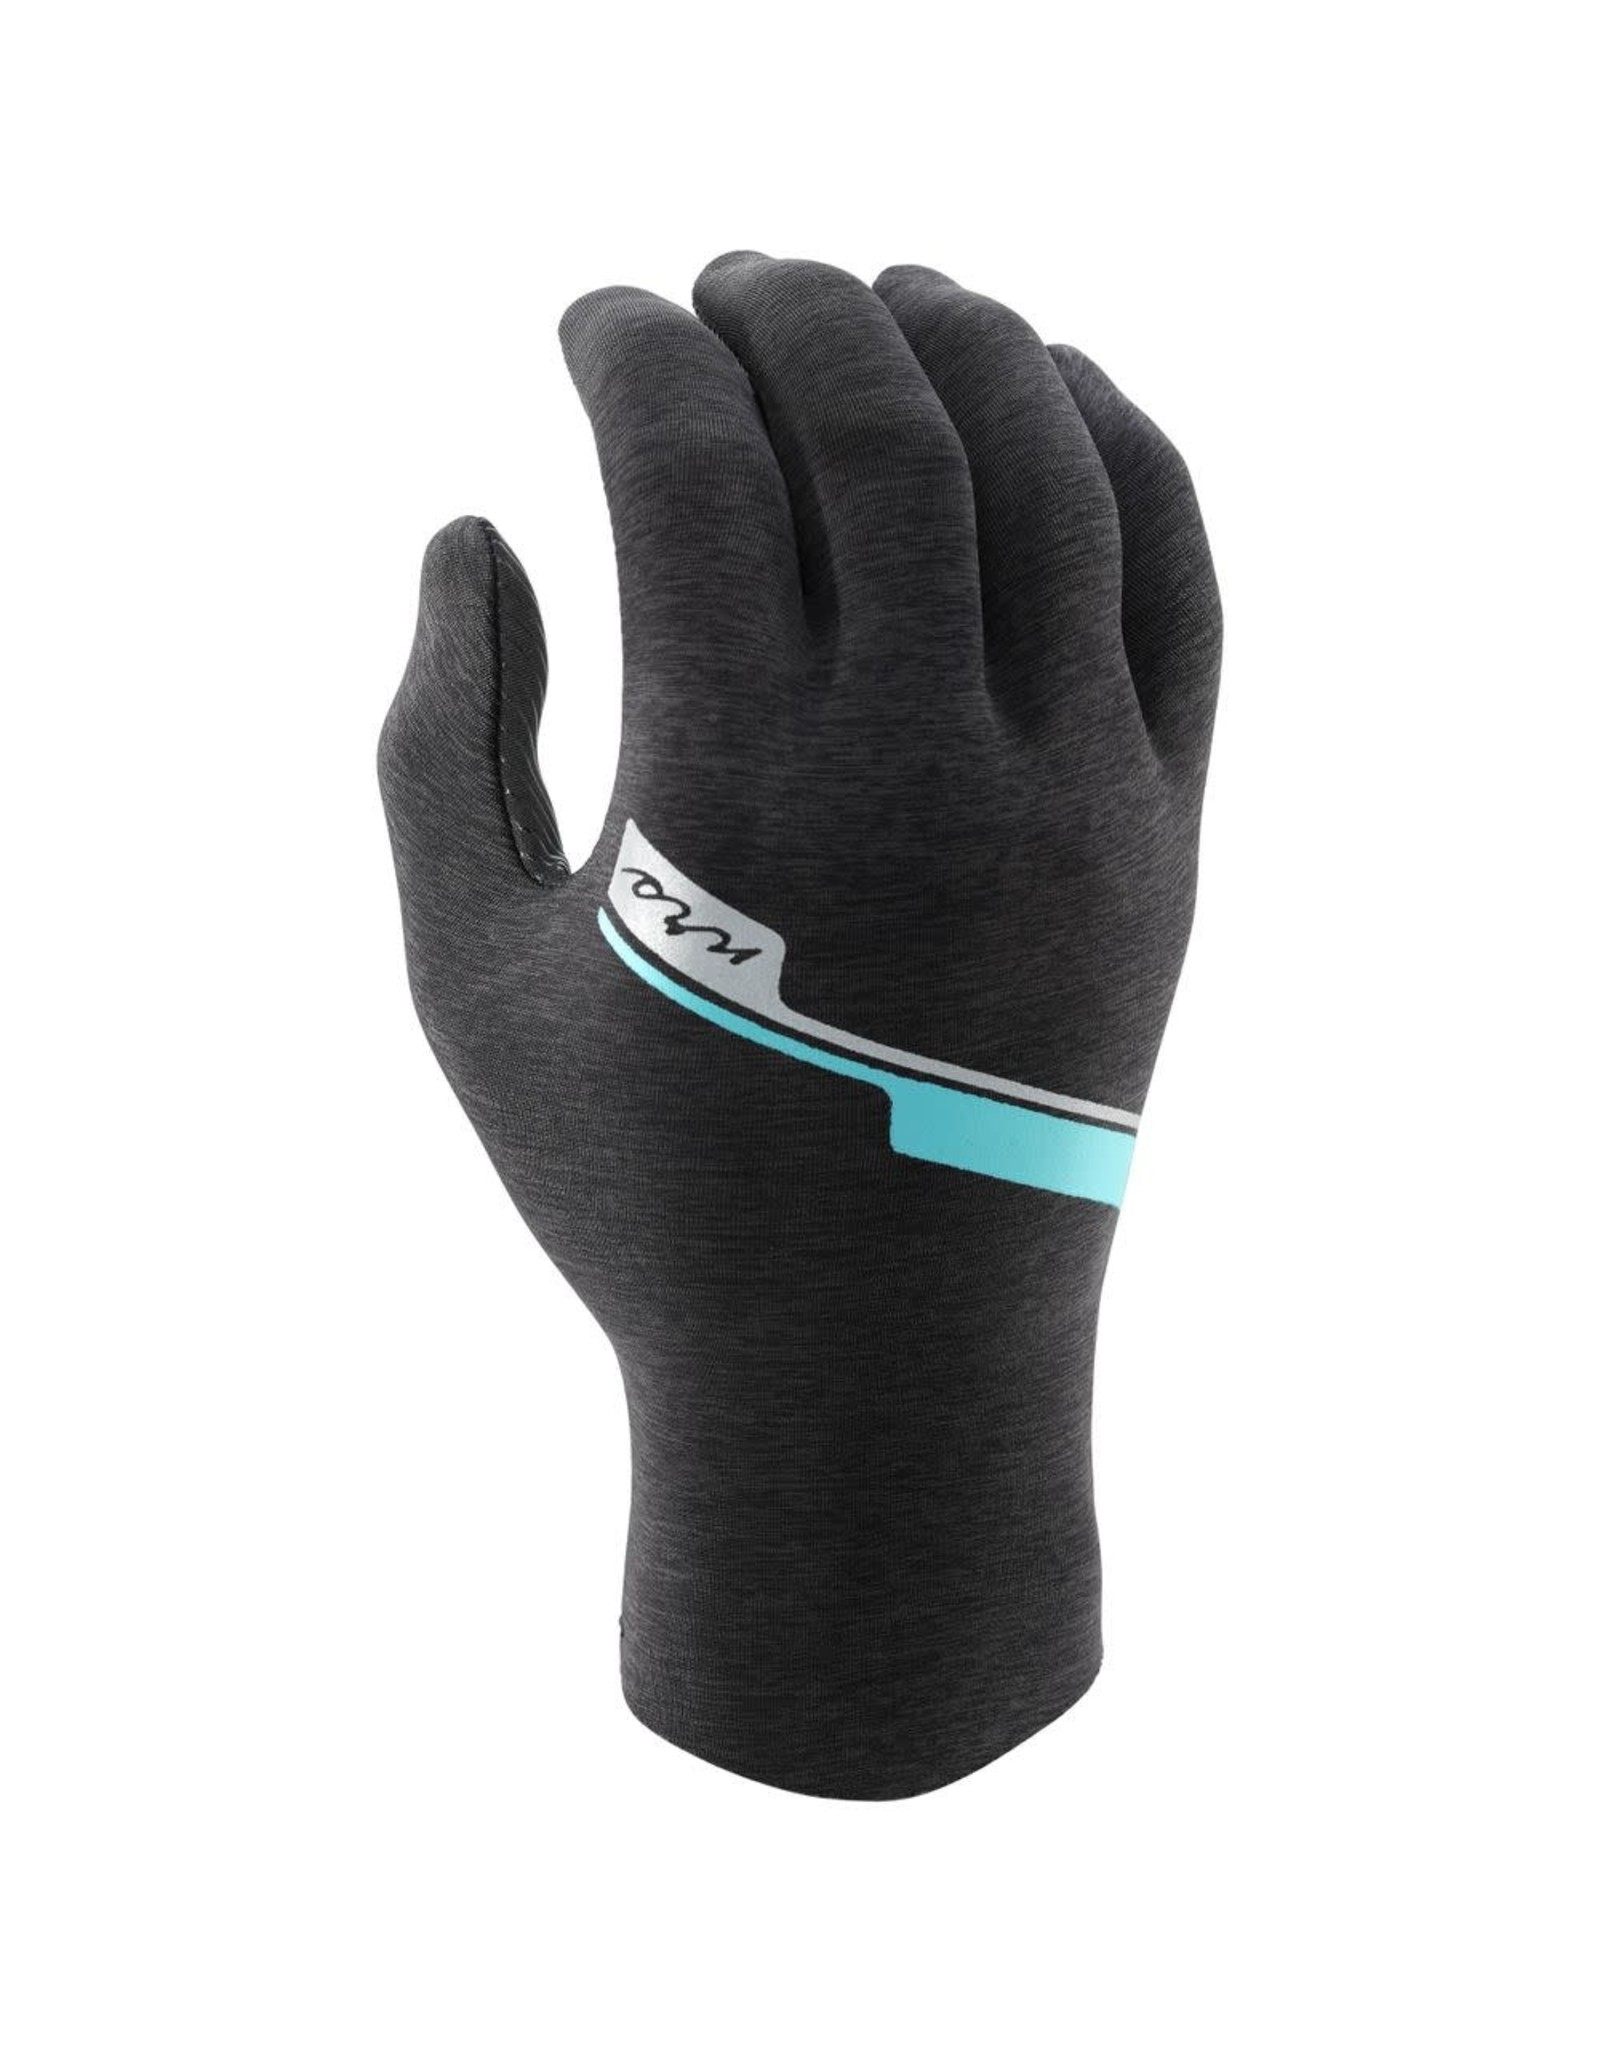 NRS NRS Women's HydroSkin Gloves